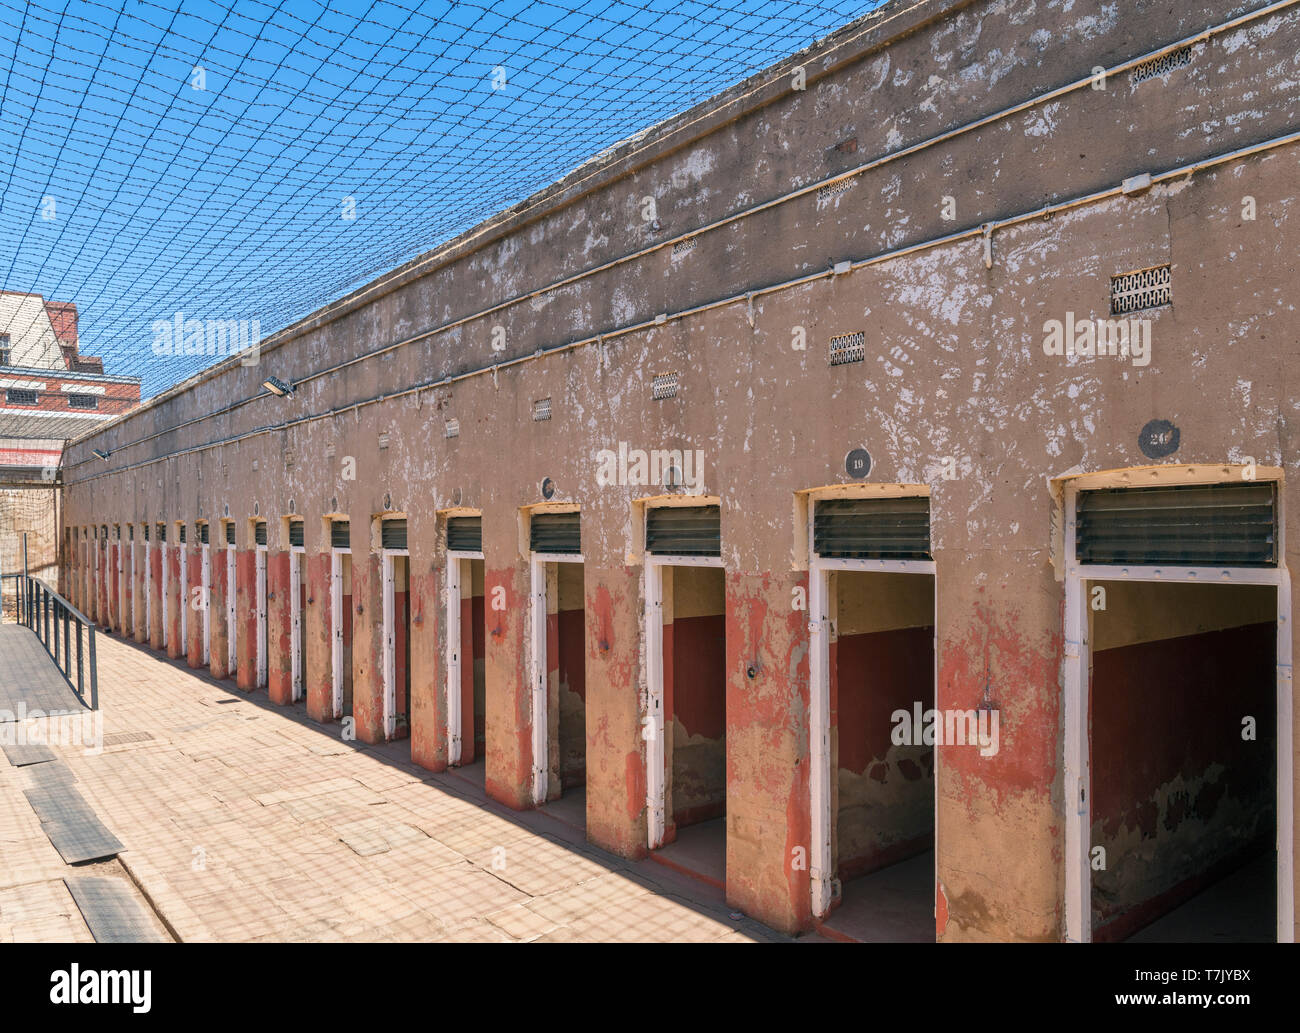 Isolation cells in Number Four Jail, Constitution Hill, Johannesburg, South Africa - Stock Image